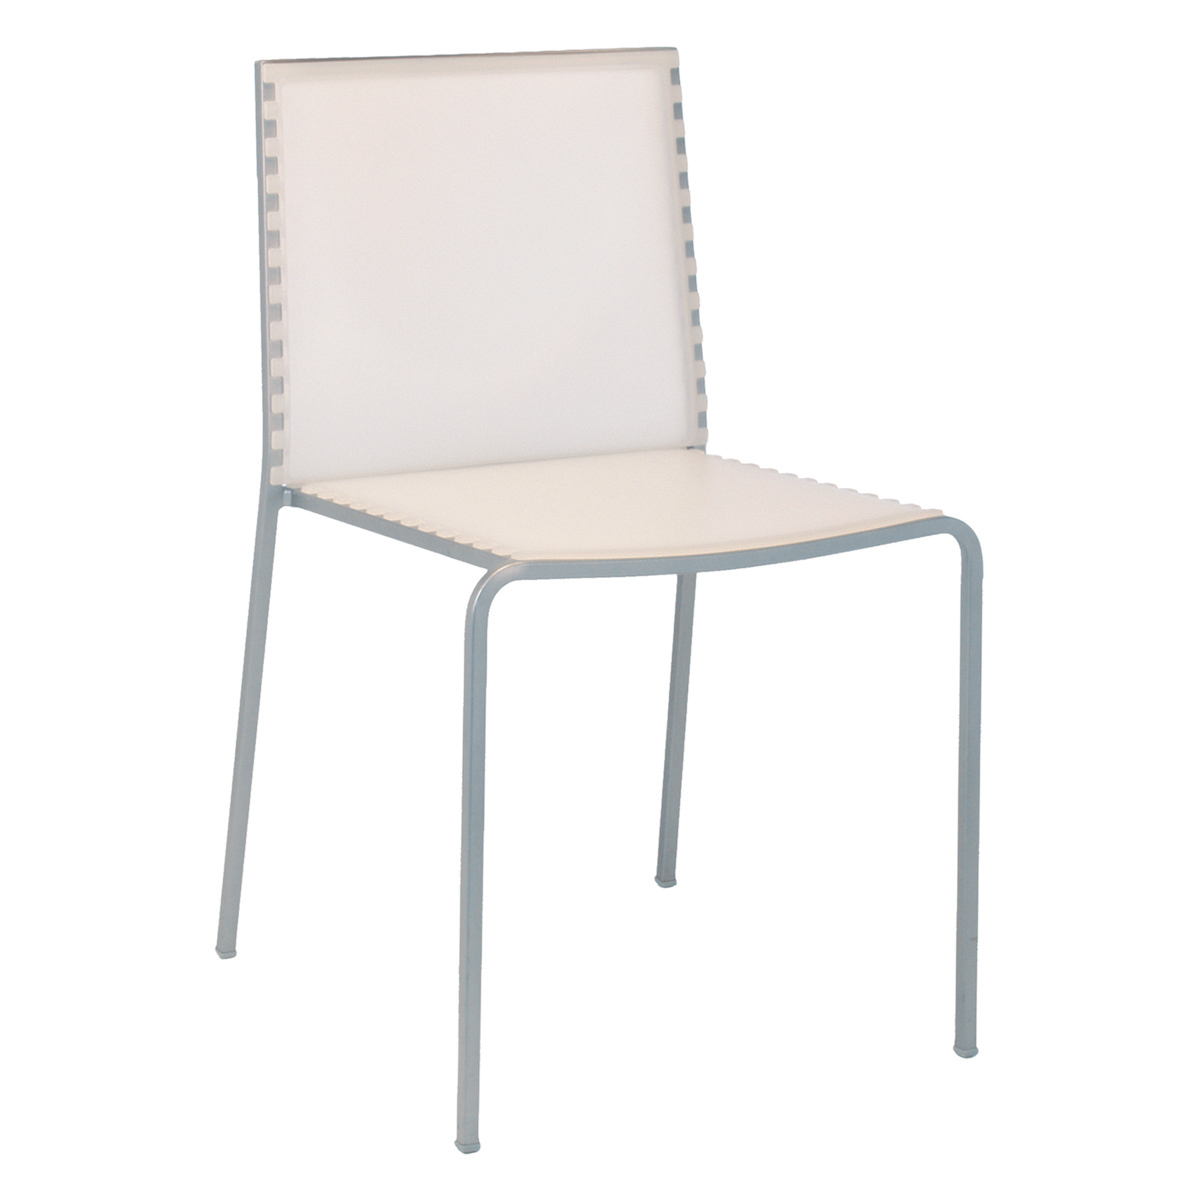 Chaise zip translucide internation moduling for Chaise translucide